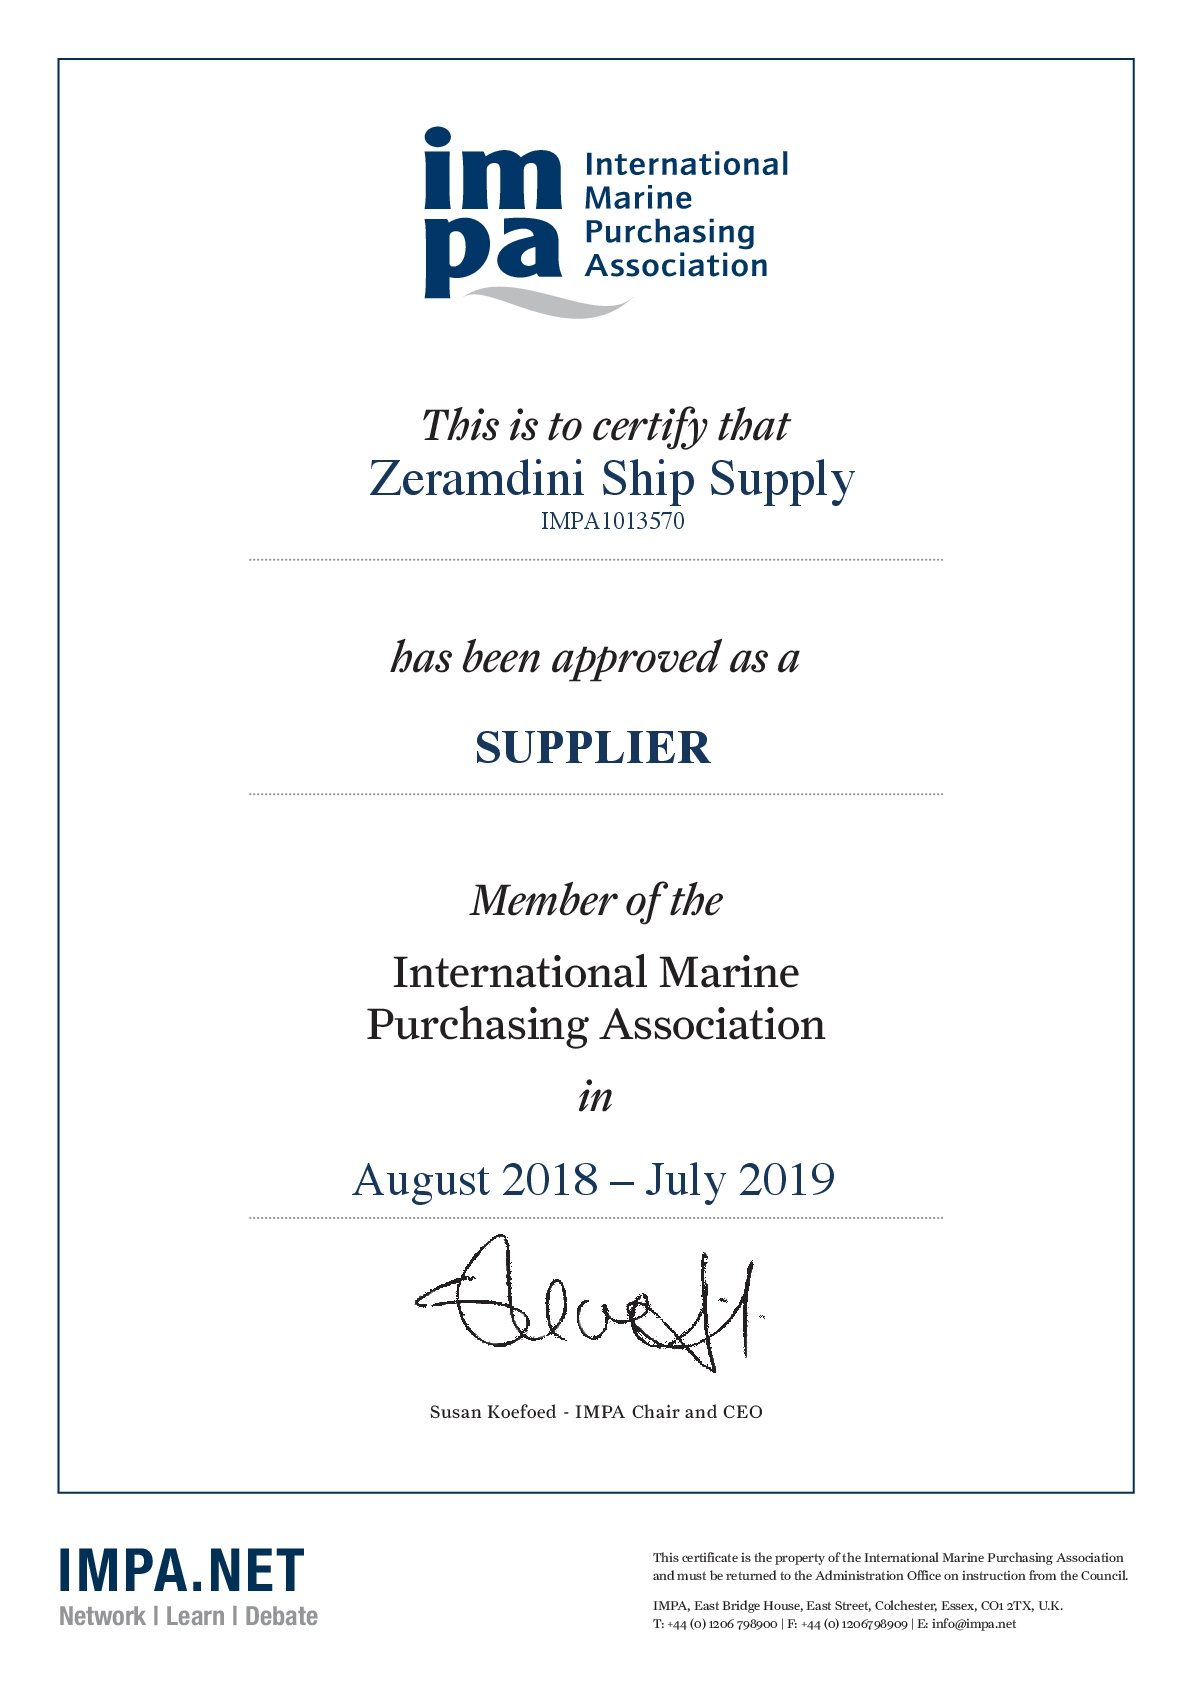 IMPA Certificate 2018 - Zeramdini Ship Supply-001